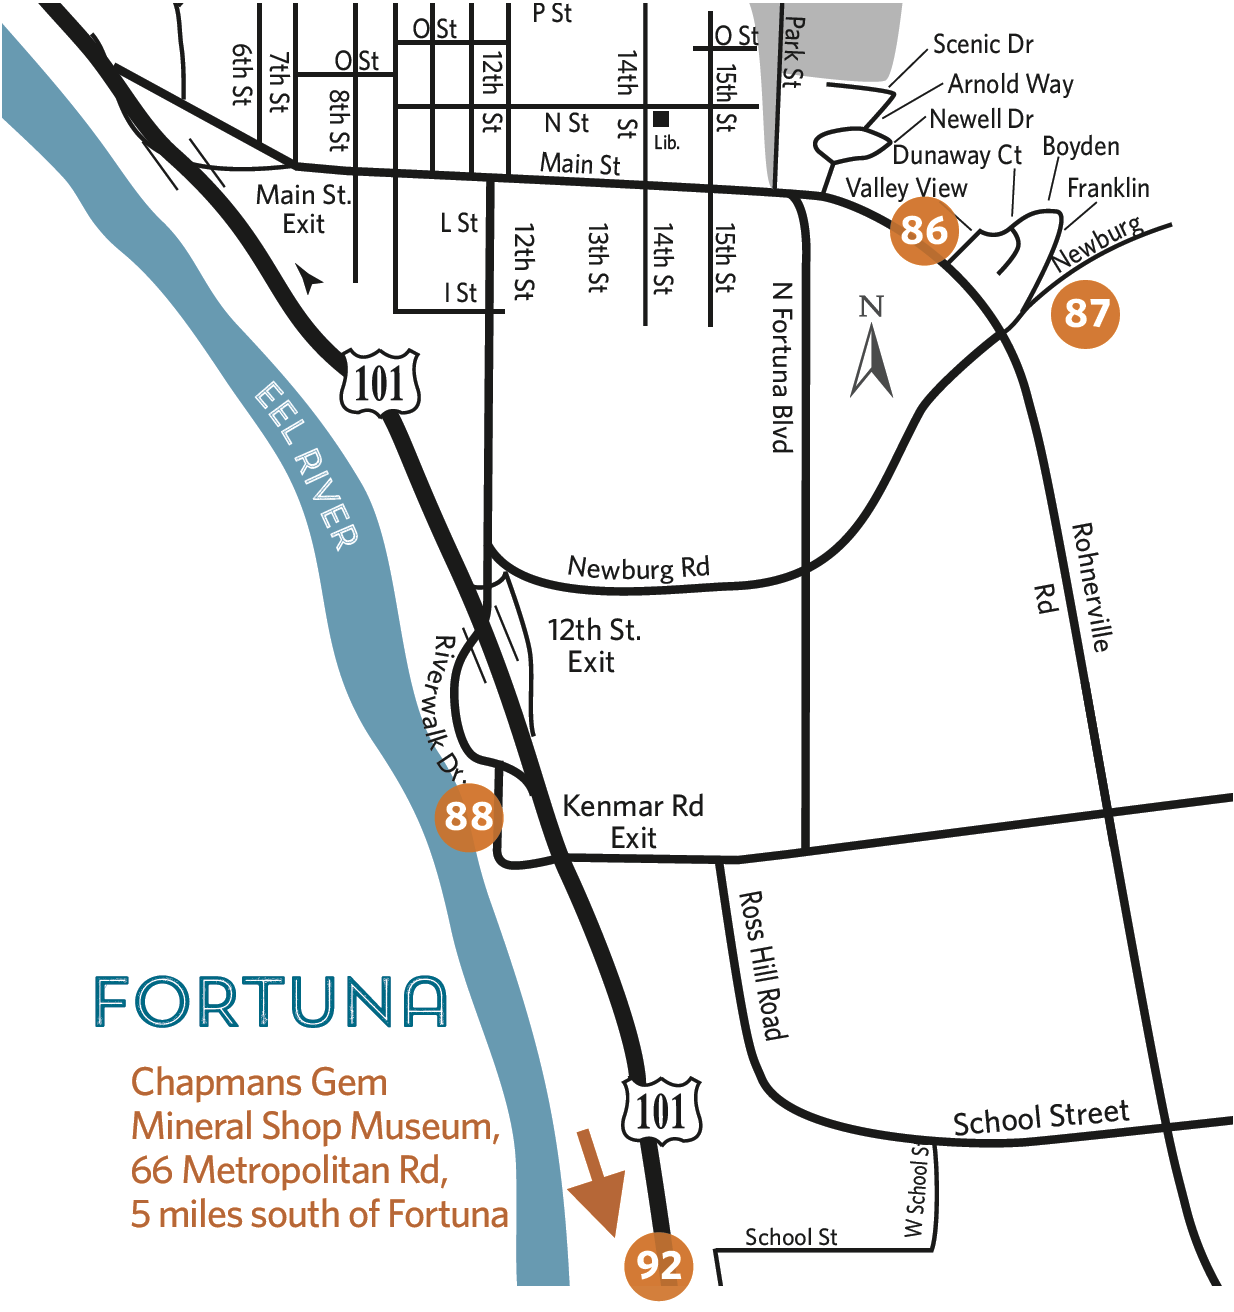 Overview map of locations - Fortuna